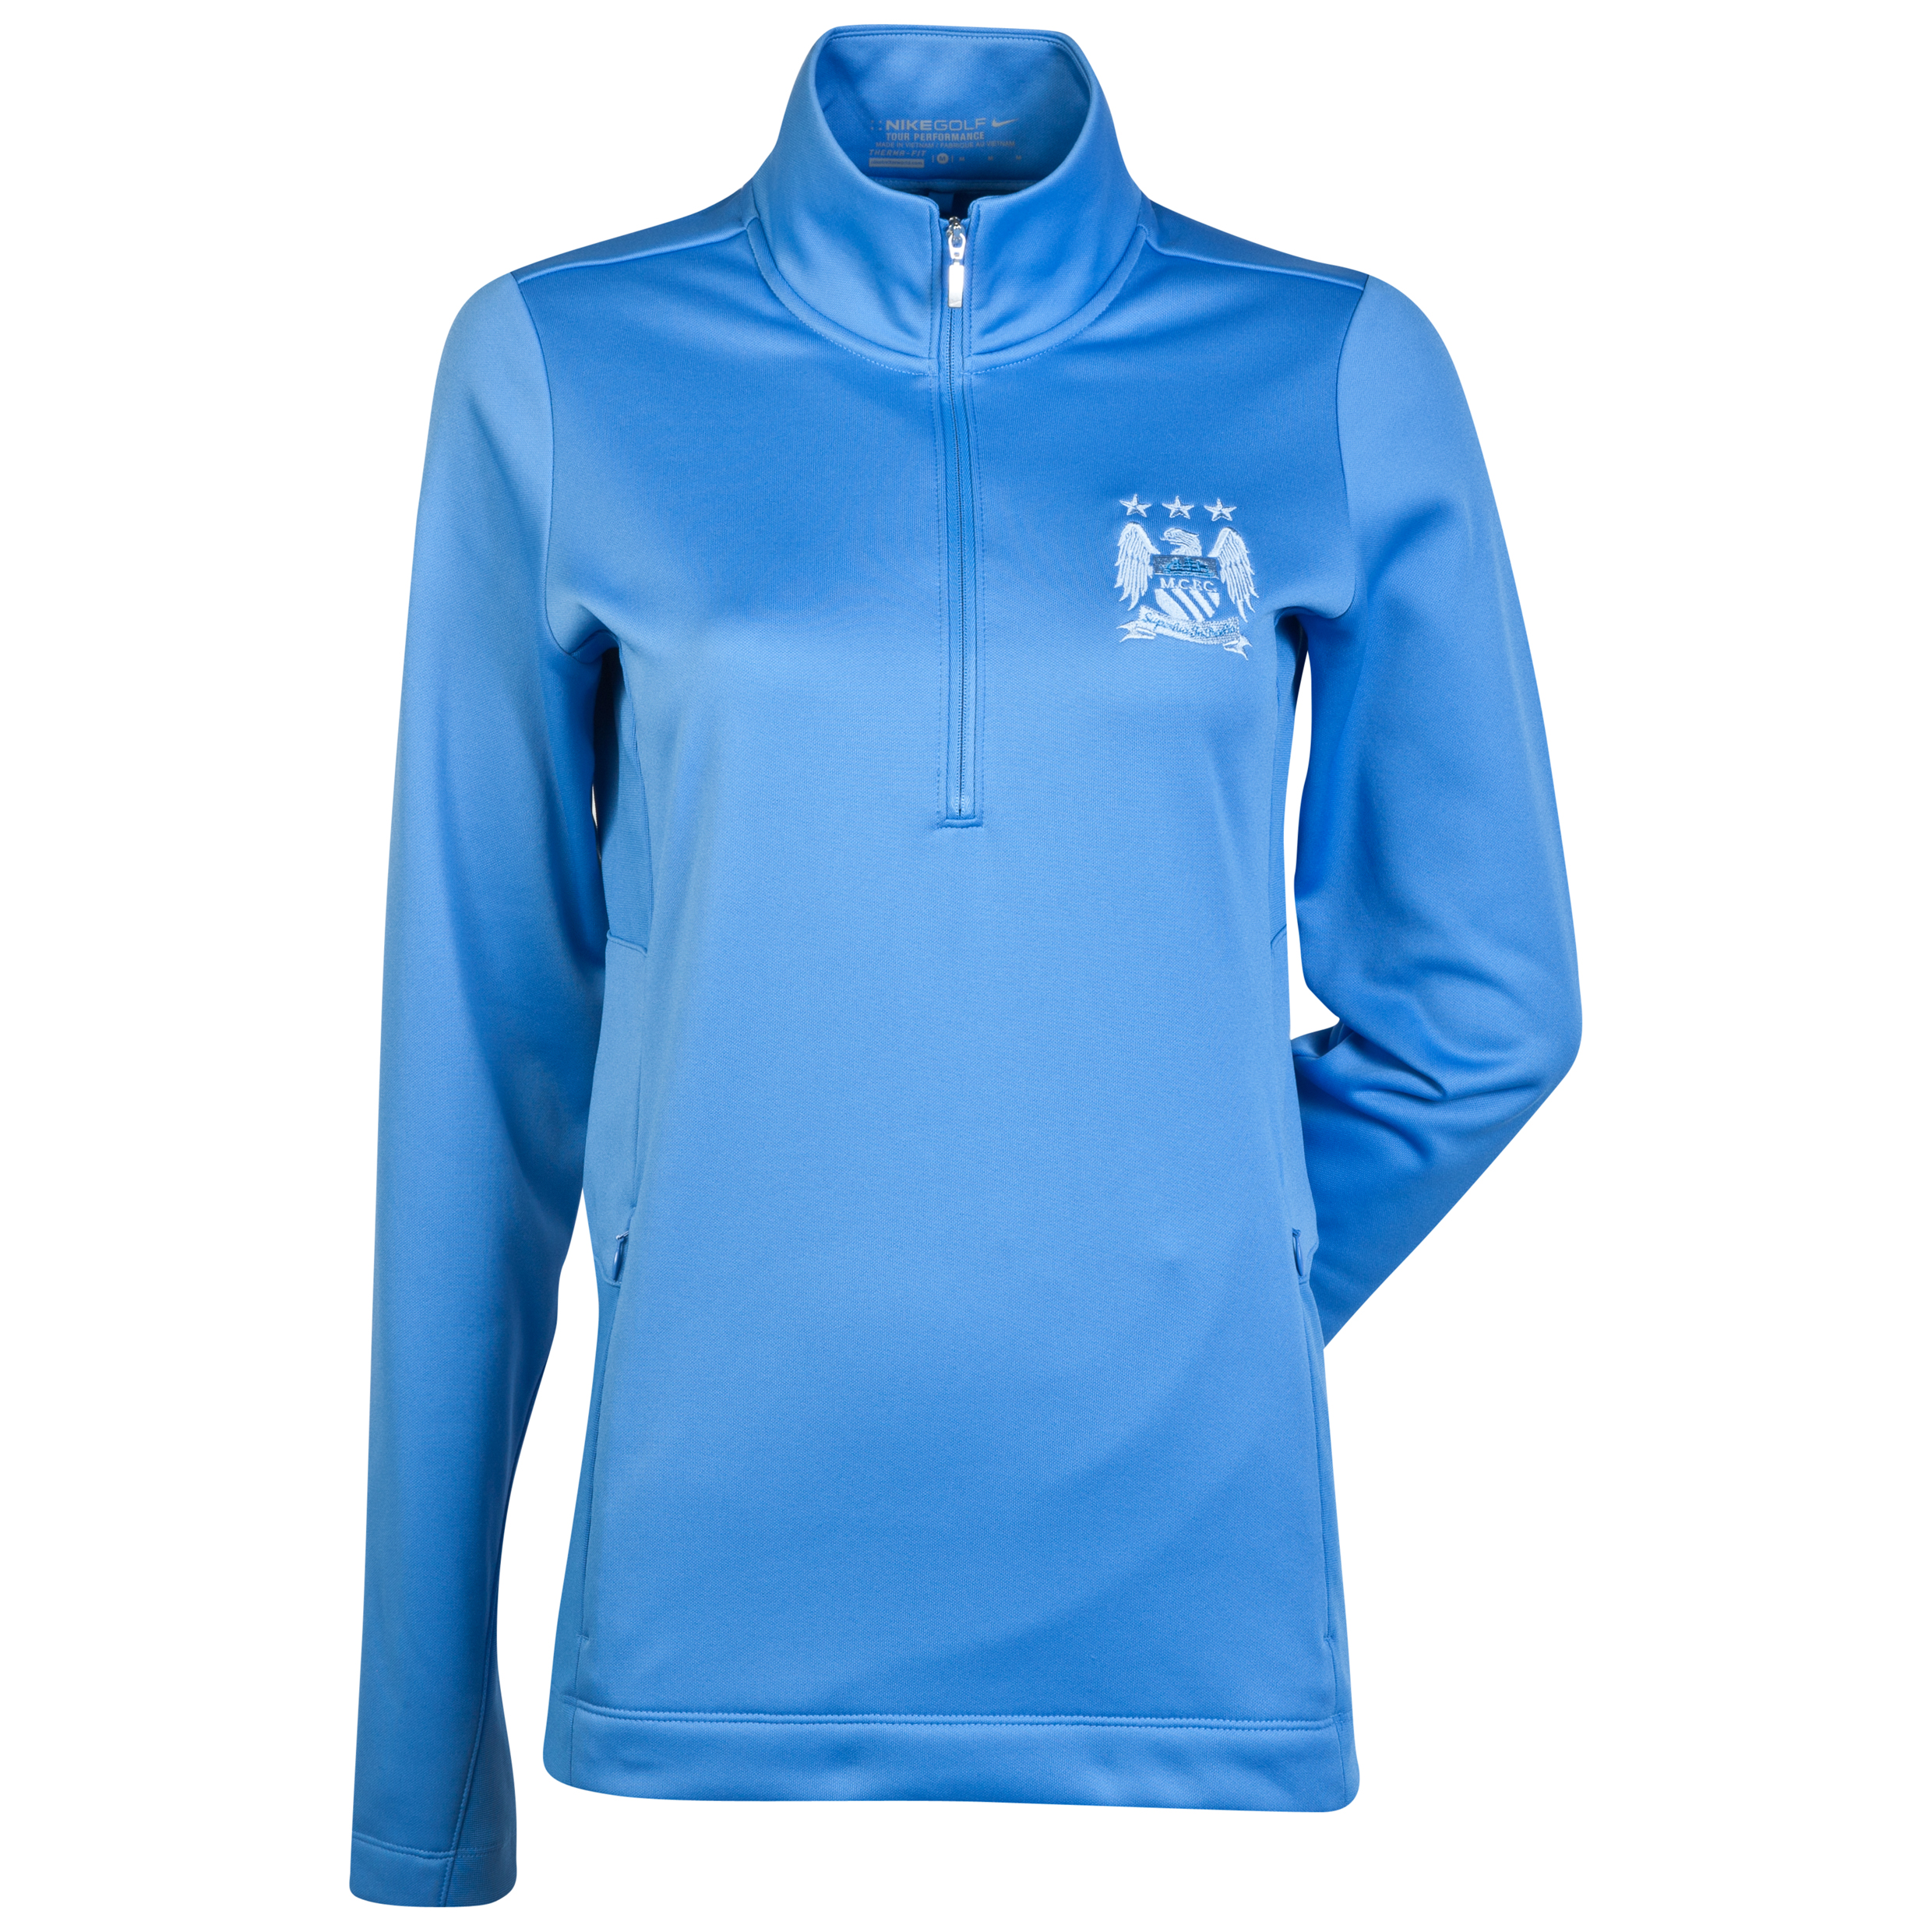 Manchester City Nike Golf Thermal 1/2 Zip Top - Womens Blue